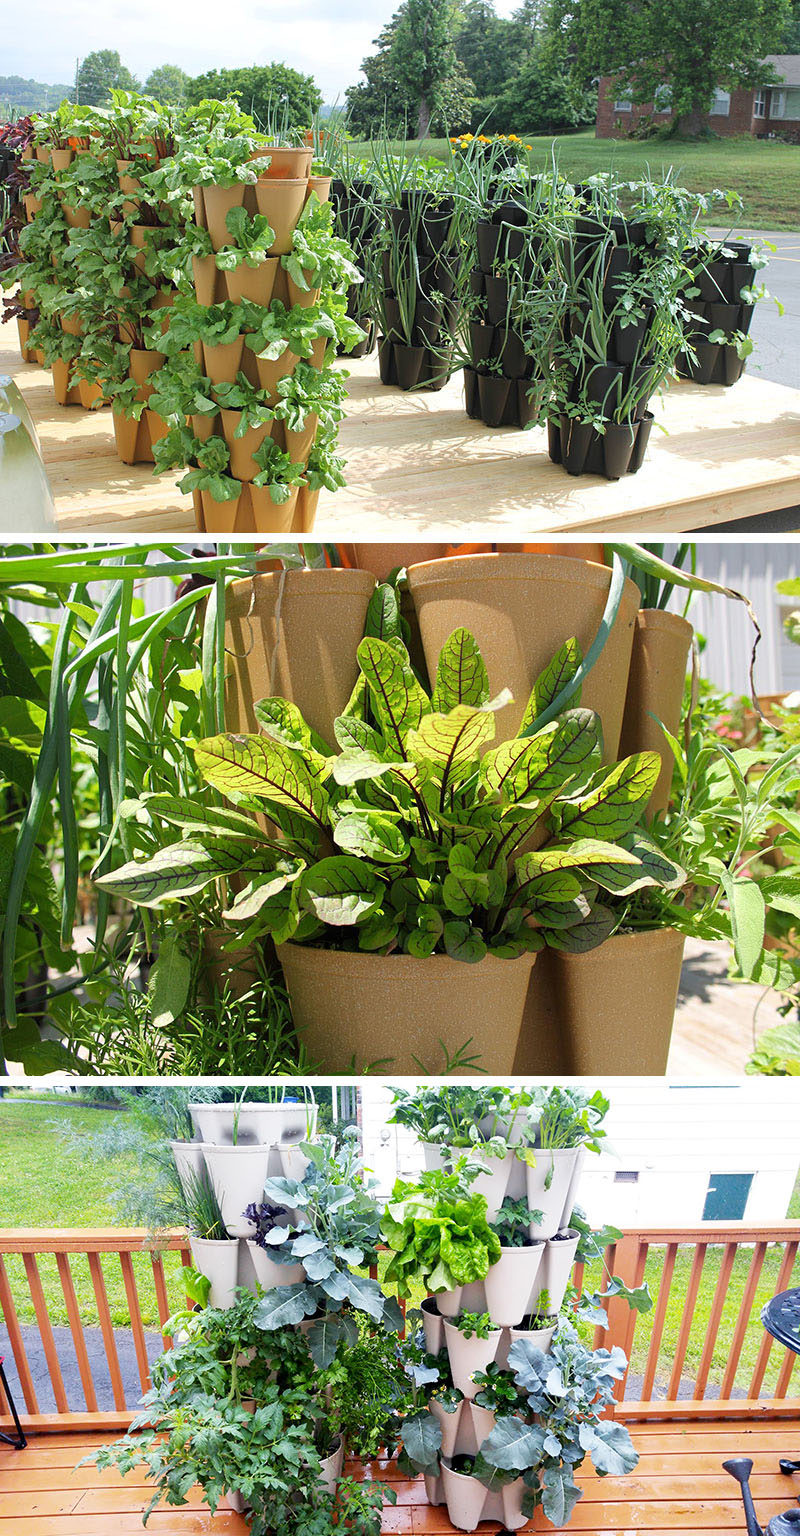 5 Vertical Vegetable Garden Ideas For Beginners / These stackable pots make growing your own vegetables a breeze. They can grow anything from lettuce and onions to corn and zucchini.